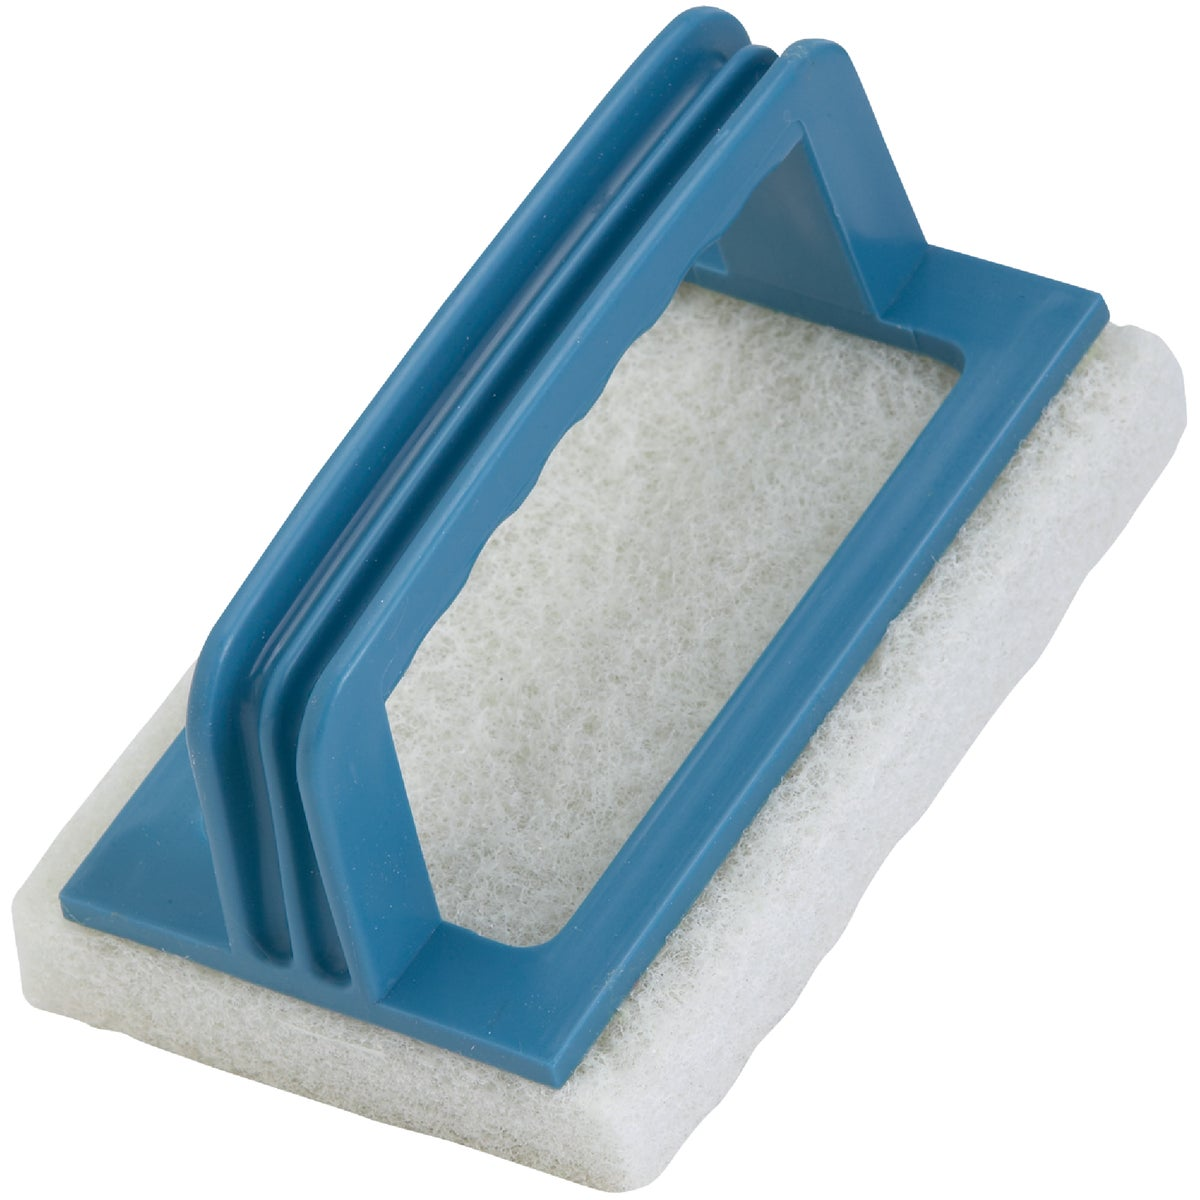 BATH & TILE SCRUBBER - 616293 by Do it Best